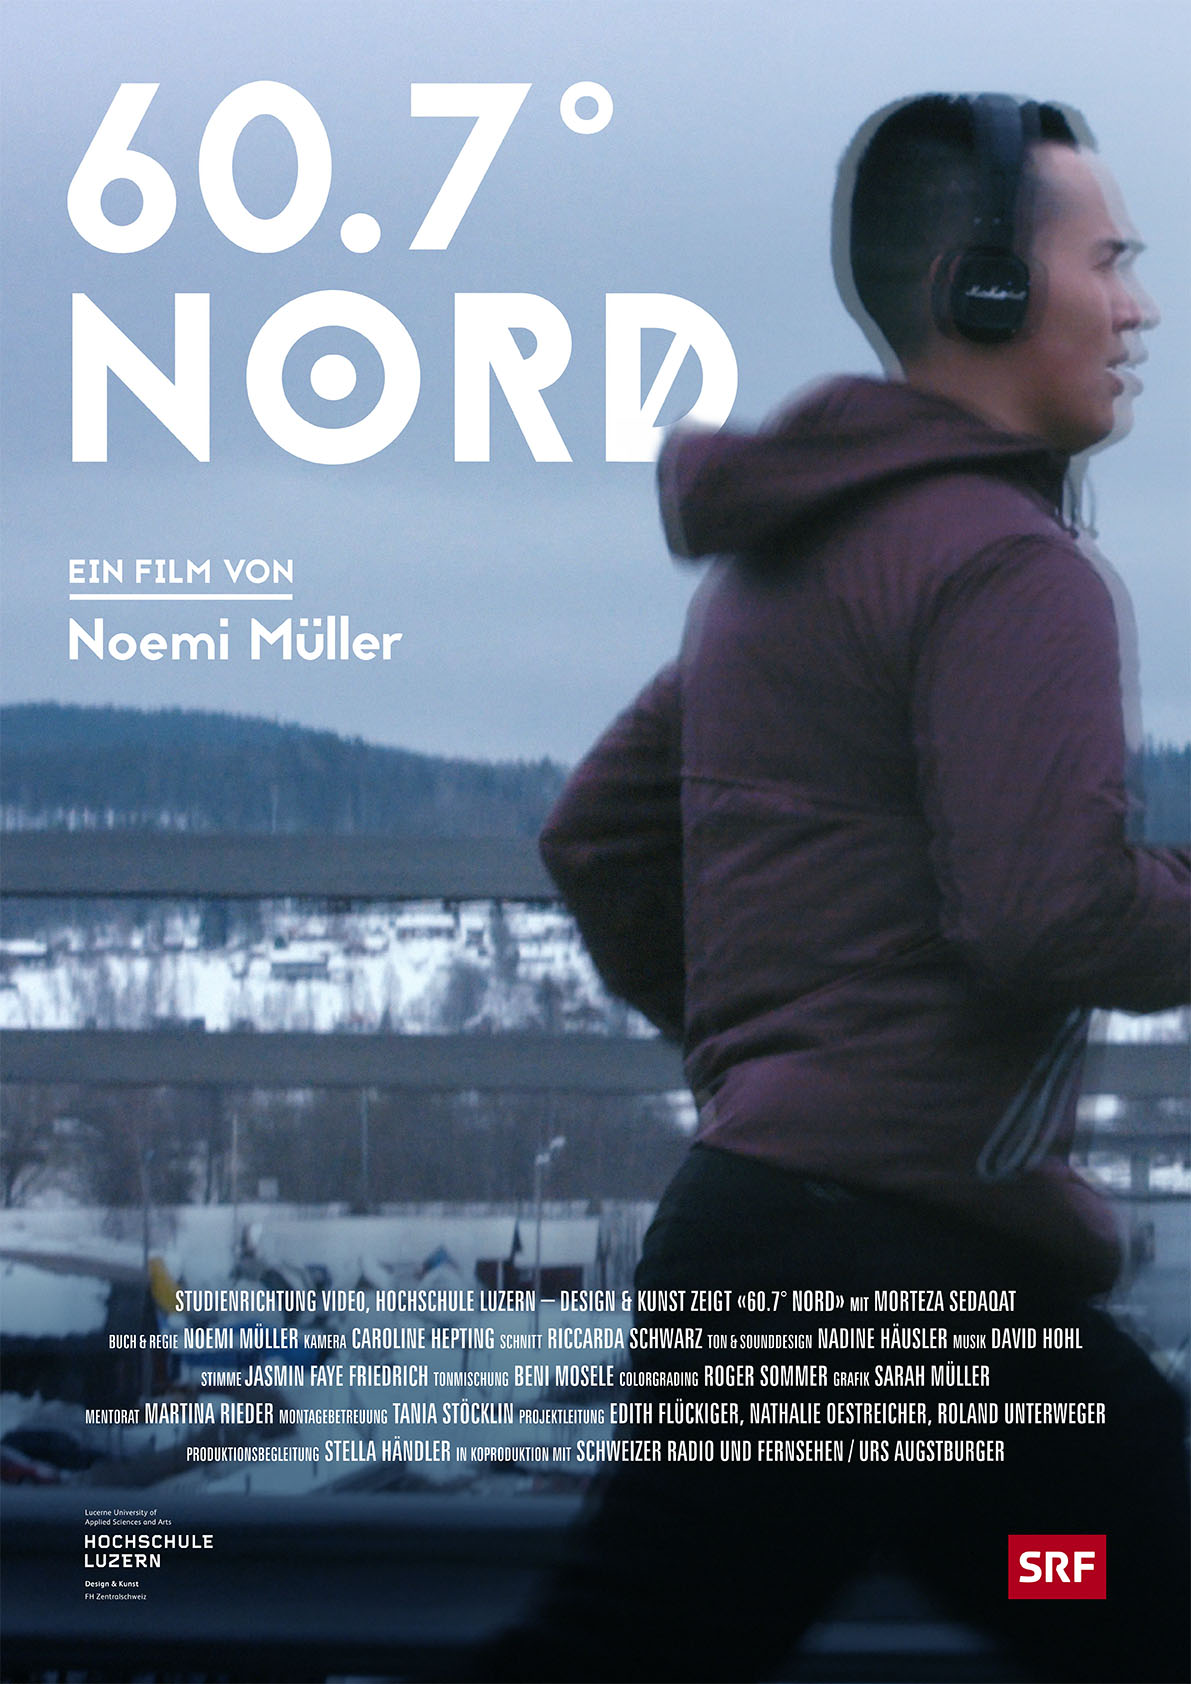 60,7°NORD - doc., 11'25'', 2018